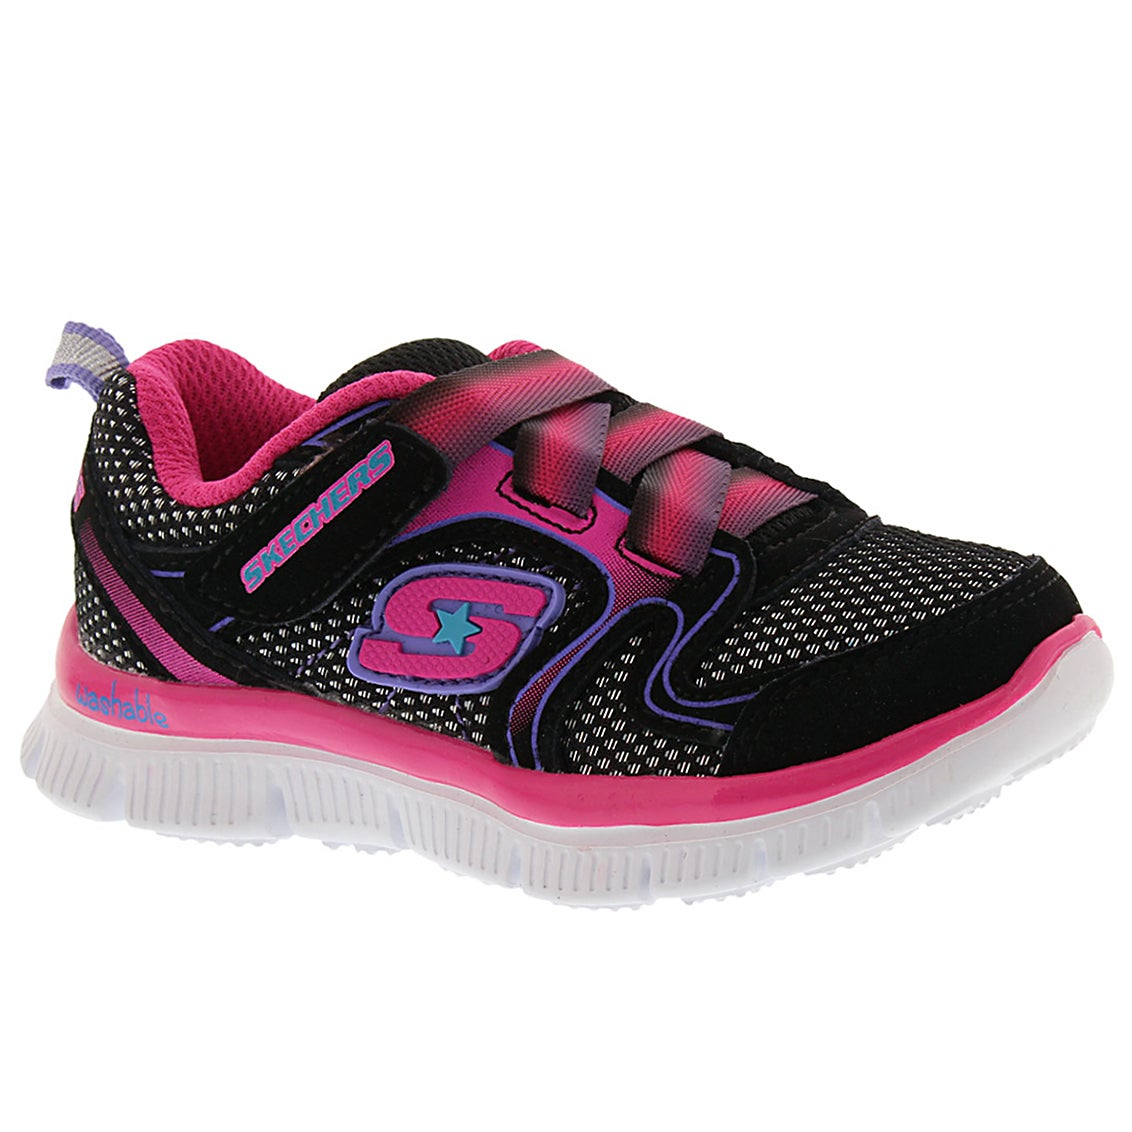 Infants' SKECH APPEAL black/pink sneakers